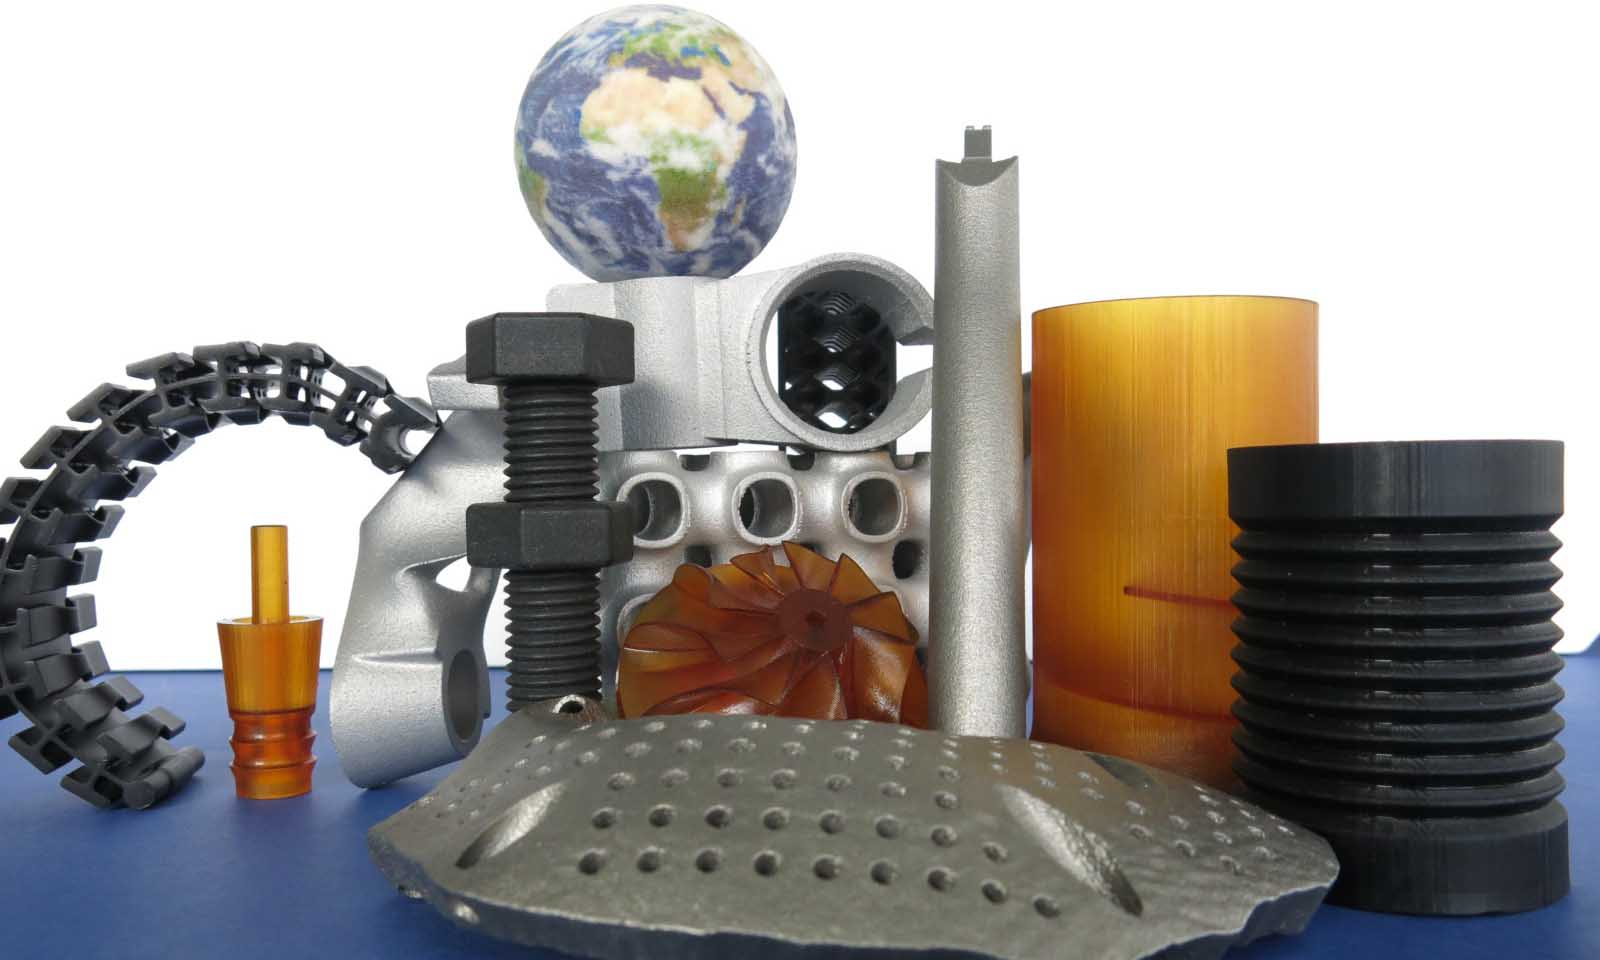 3D Printing Materials: Our Focus on Material Simulation.